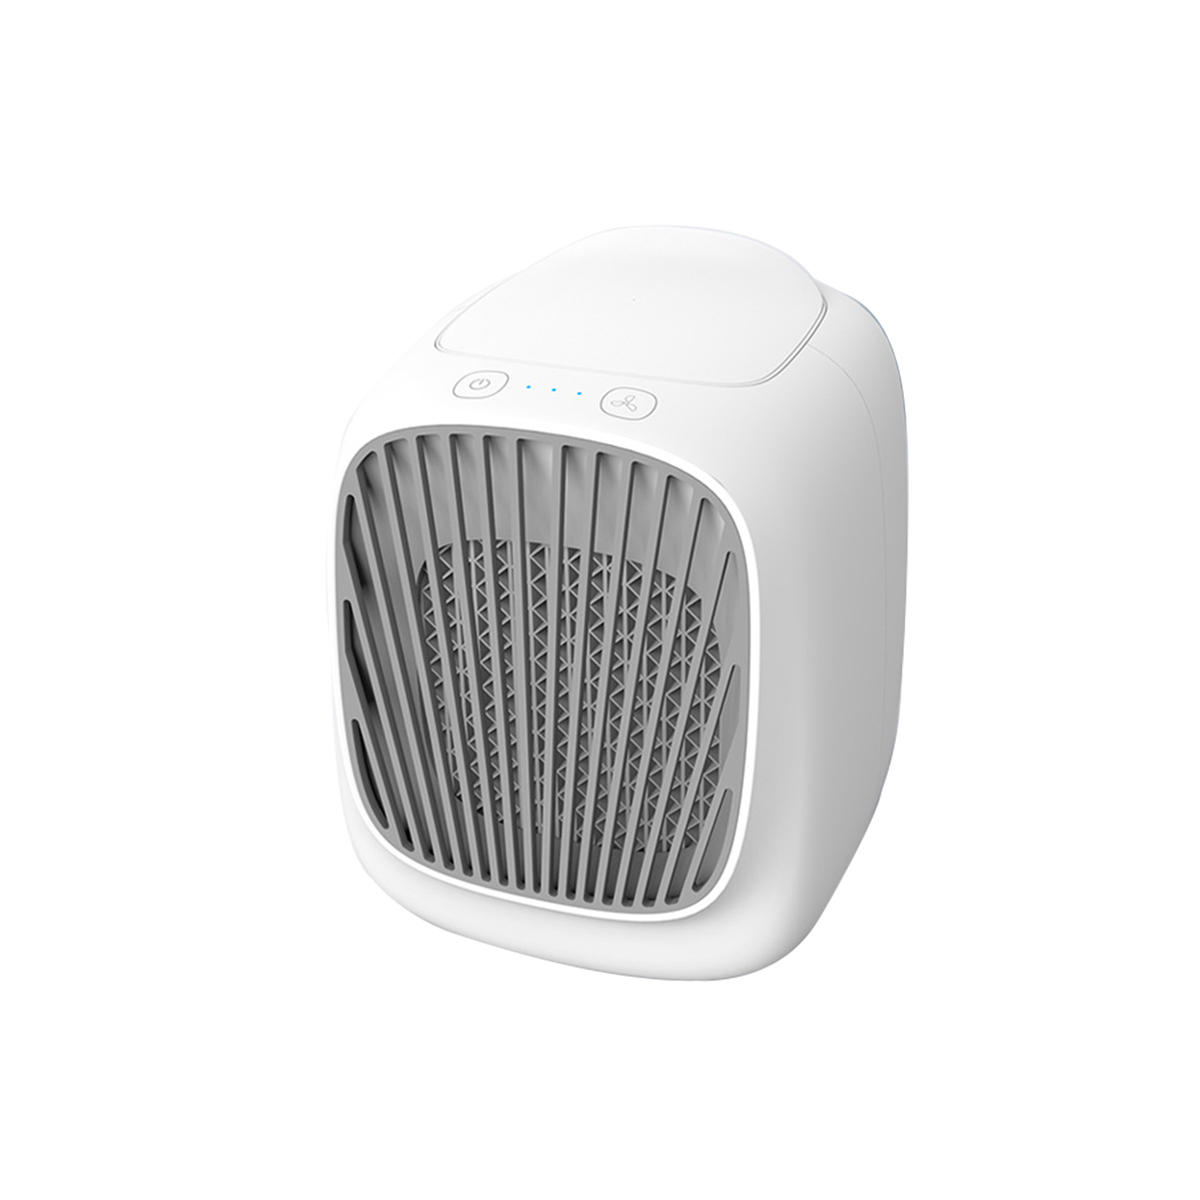 3 Gear 160ml USB Mini Air Conditioner Personal Space Water Cooling Fan Portable Air Cooler